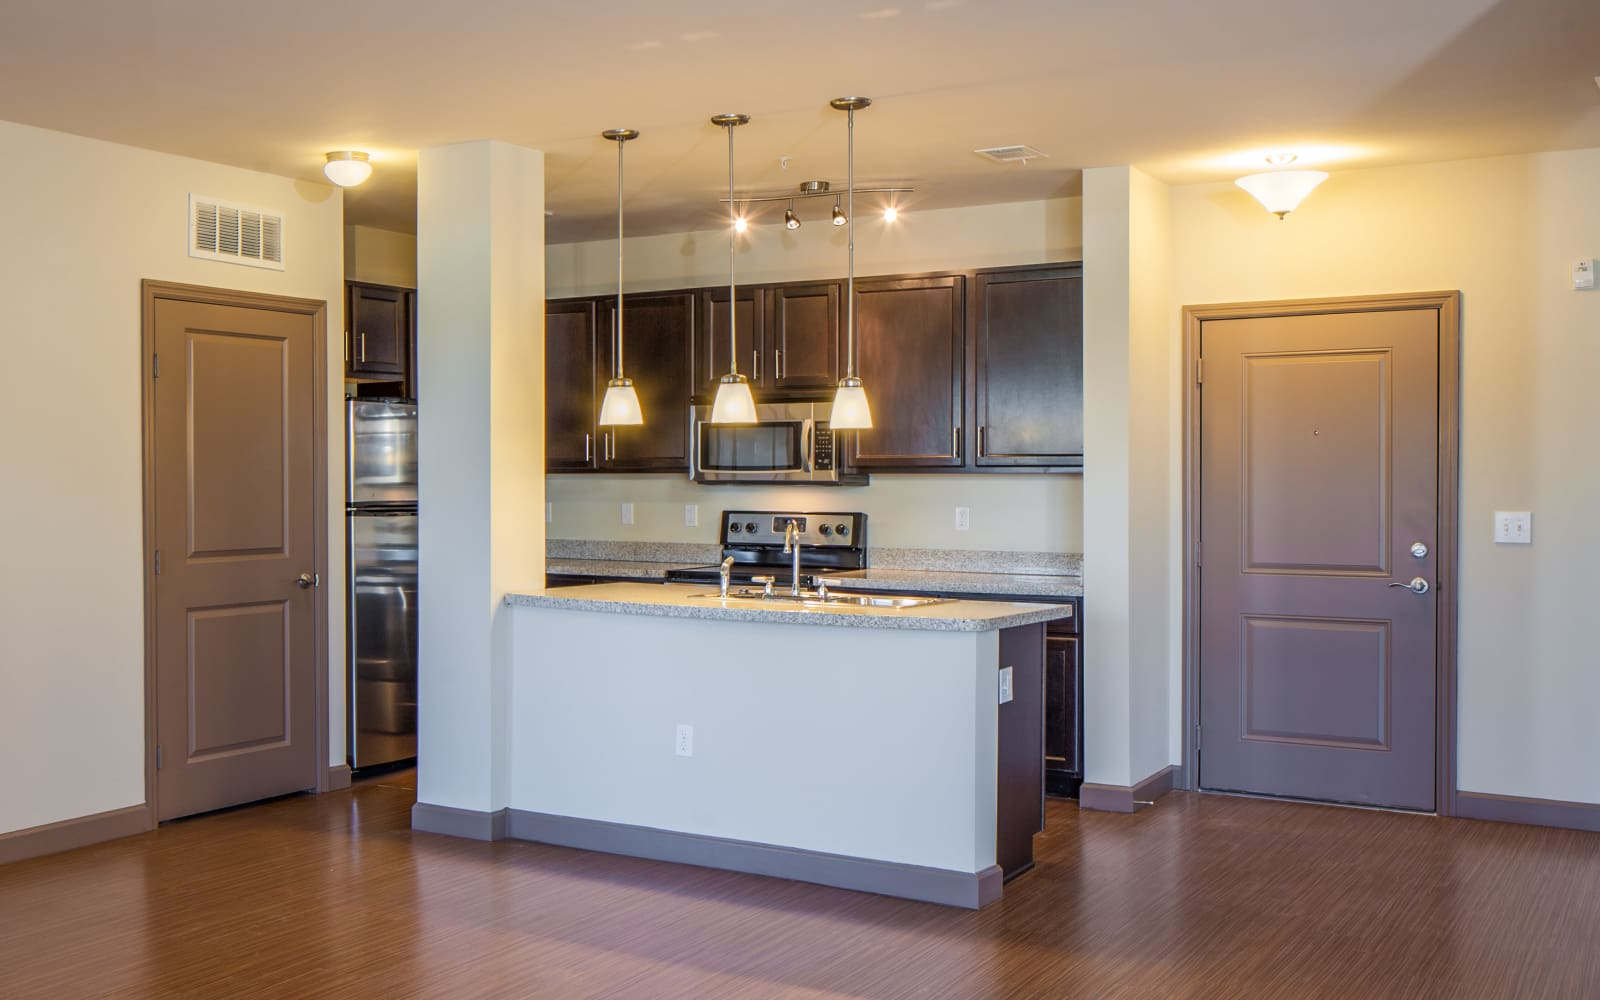 Model living room and kitchen at The High Grove in Baton Rouge, Louisiana